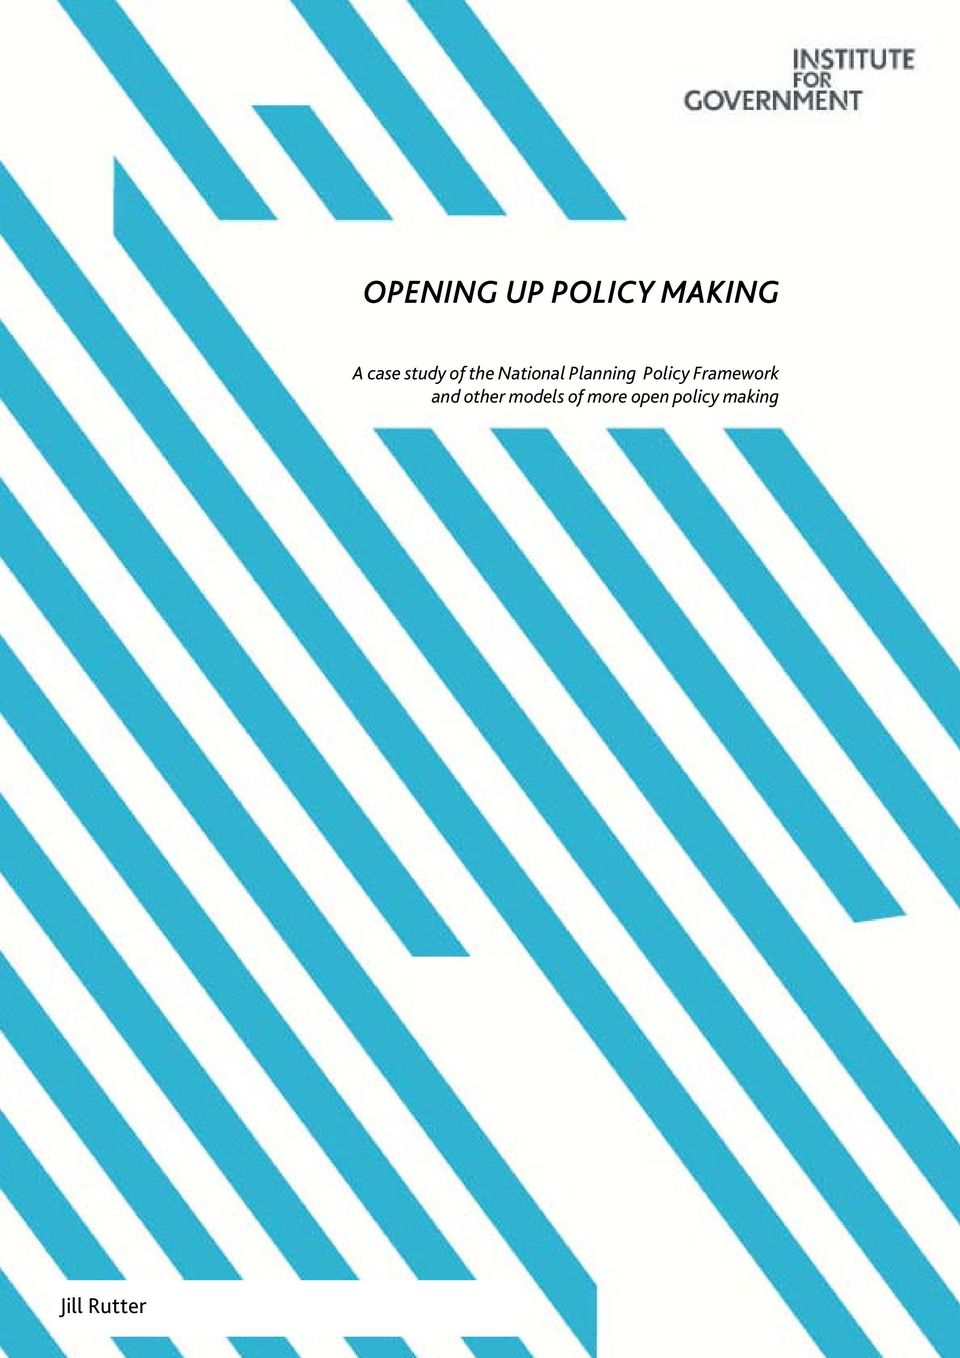 Policy Framework and other models of